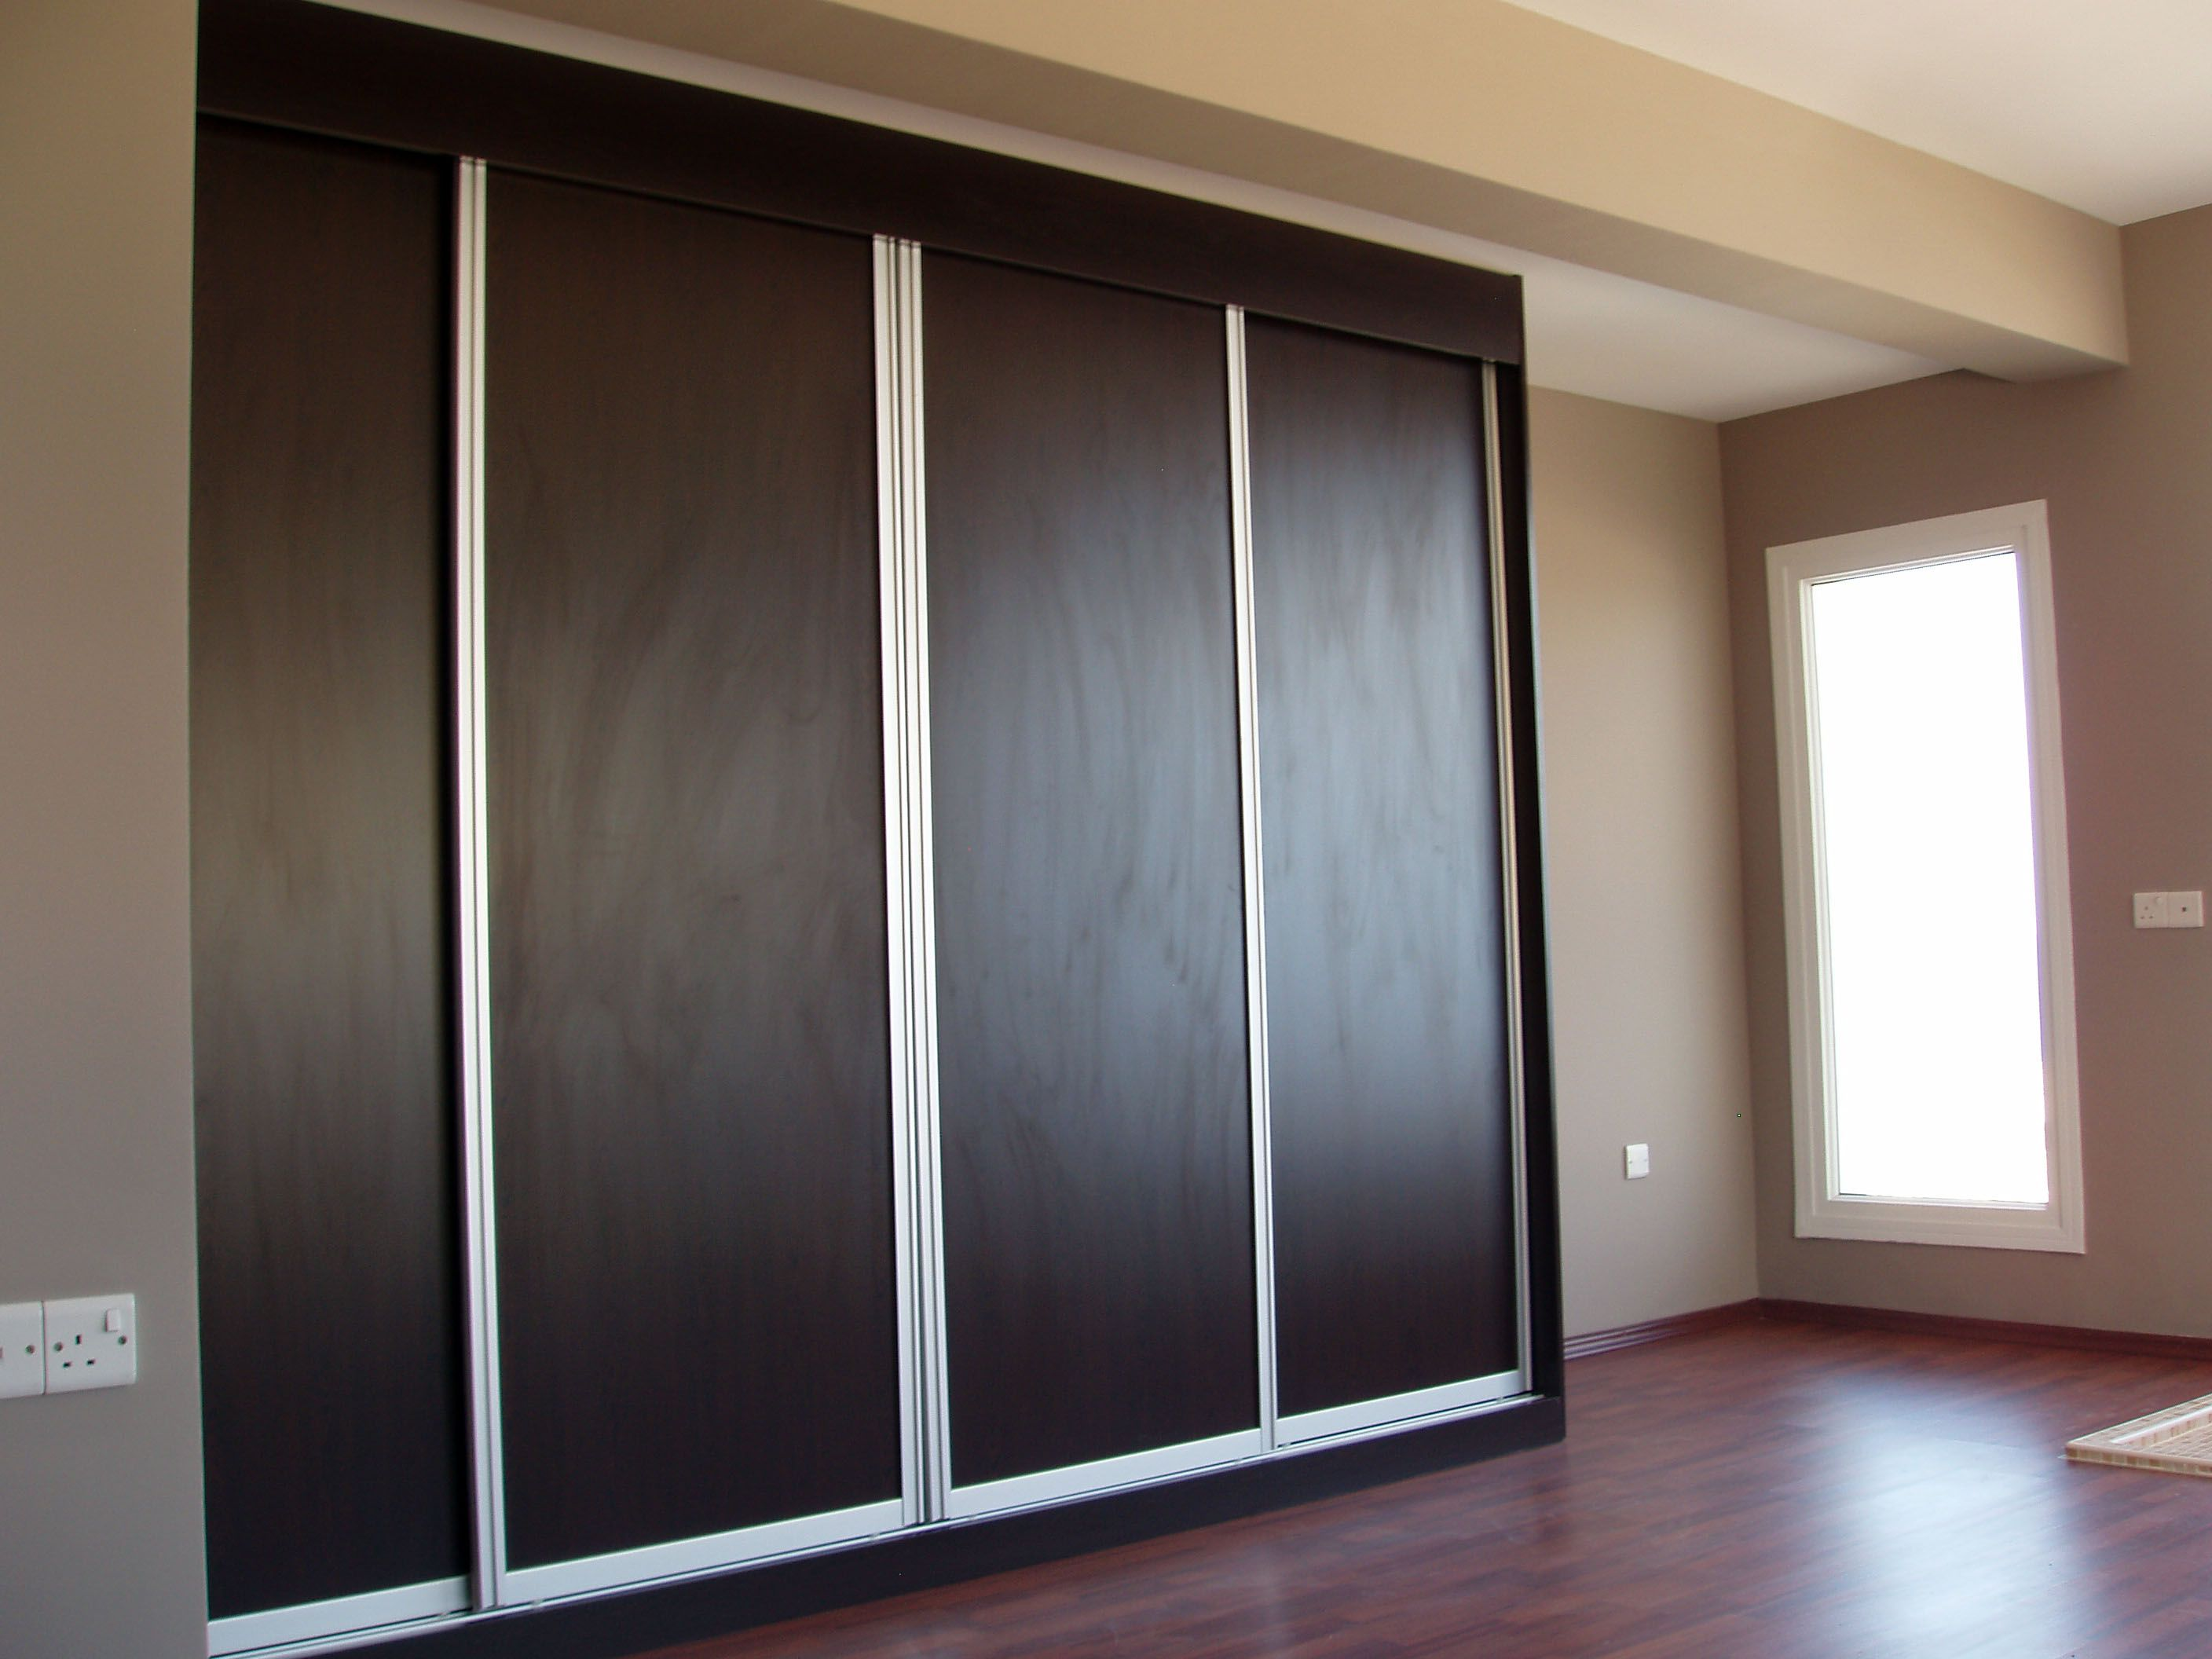 master bedroom wardrobes are designed to be different from childern bedroom and the extraguest